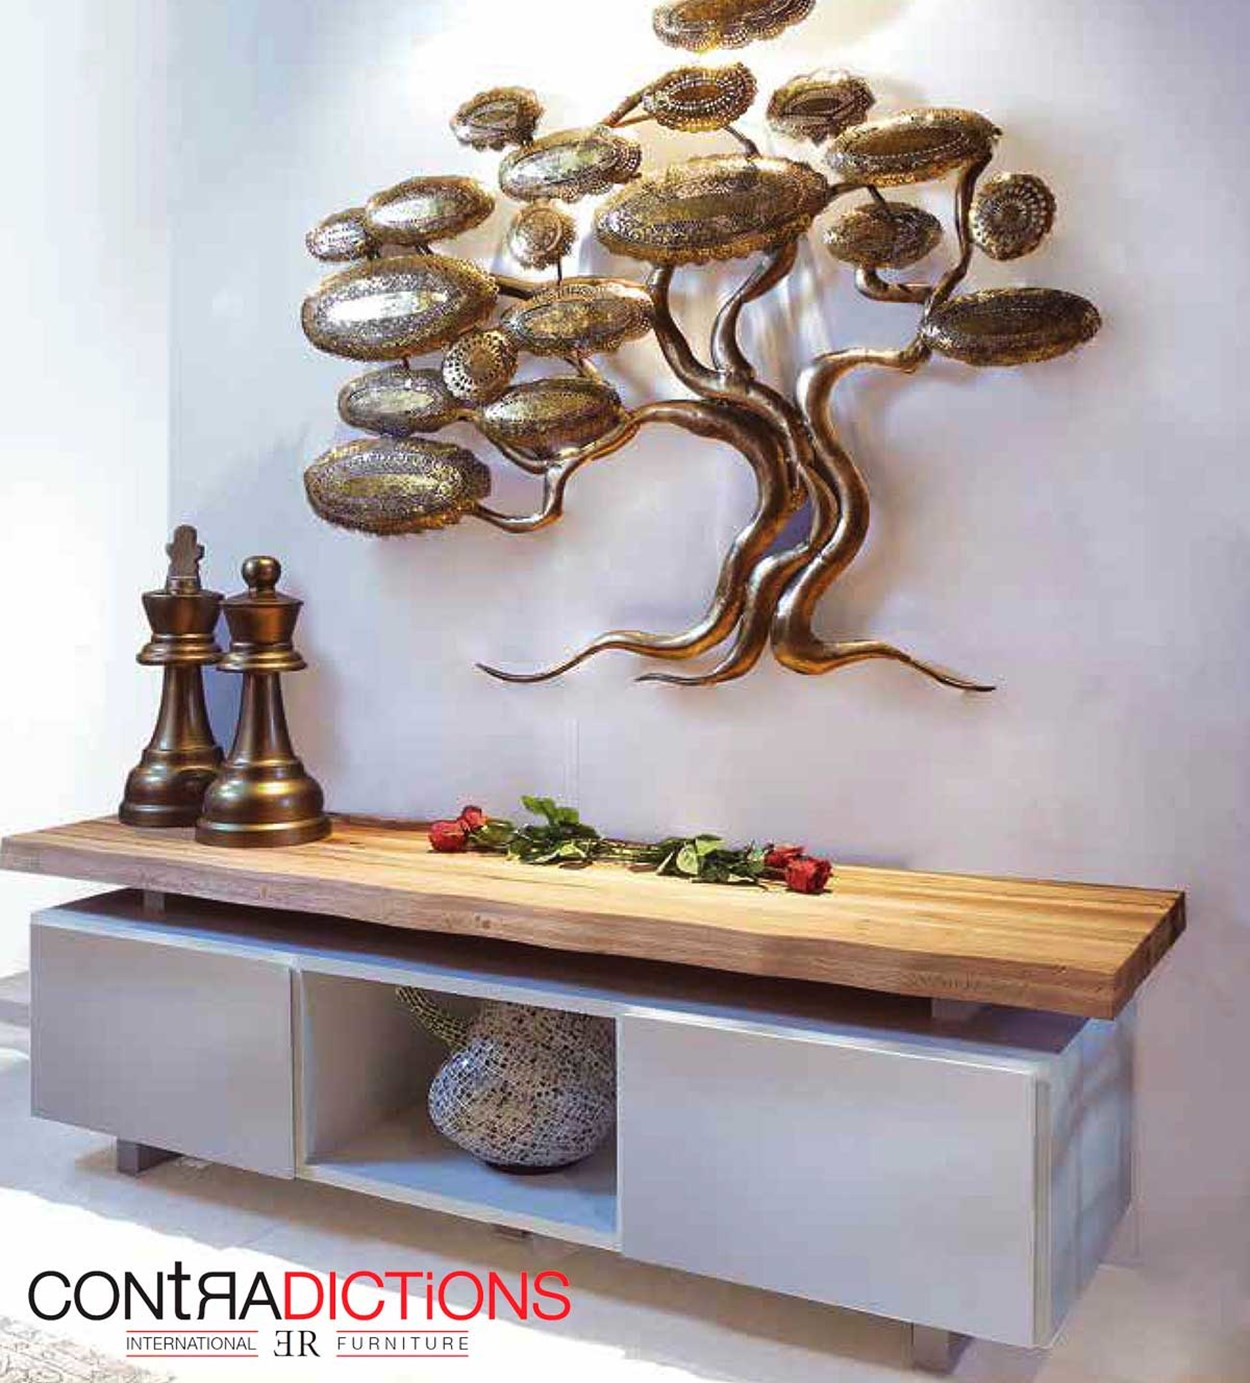 CONTRADICTIONS-TABLES-SIDEBOARDS-05.jpg